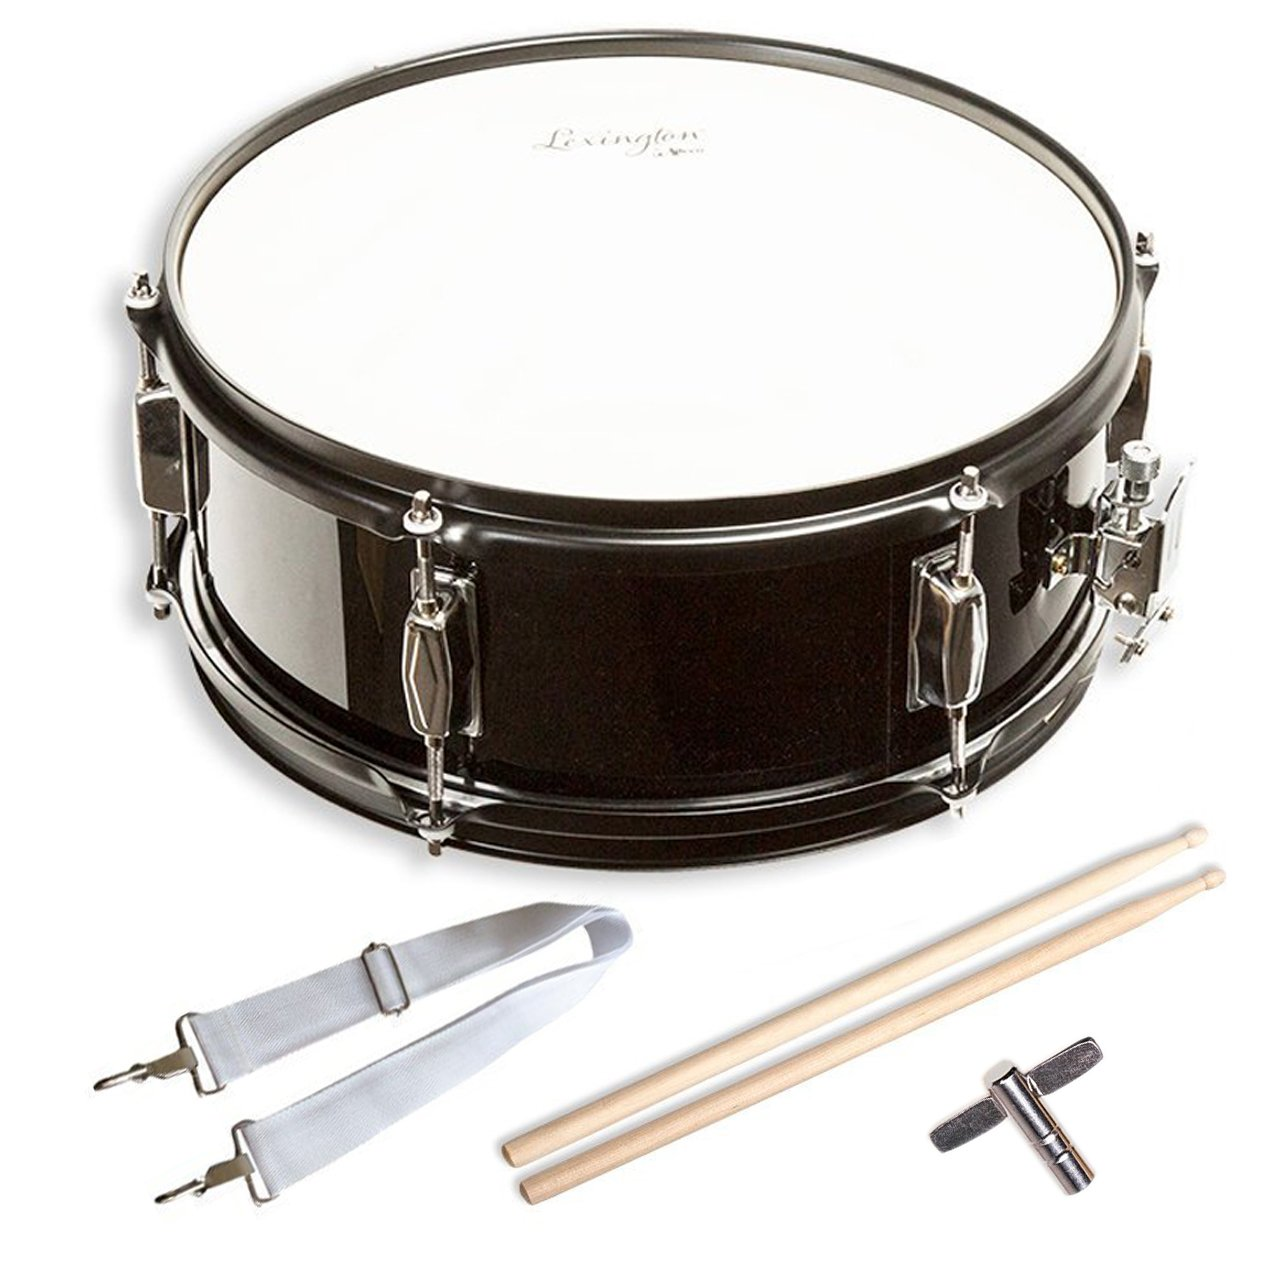 Snare Drum Set Student Steel Shell 14 X 5.5 Inches, Includes Drum Key, Drumsticks and Strap by Aileen